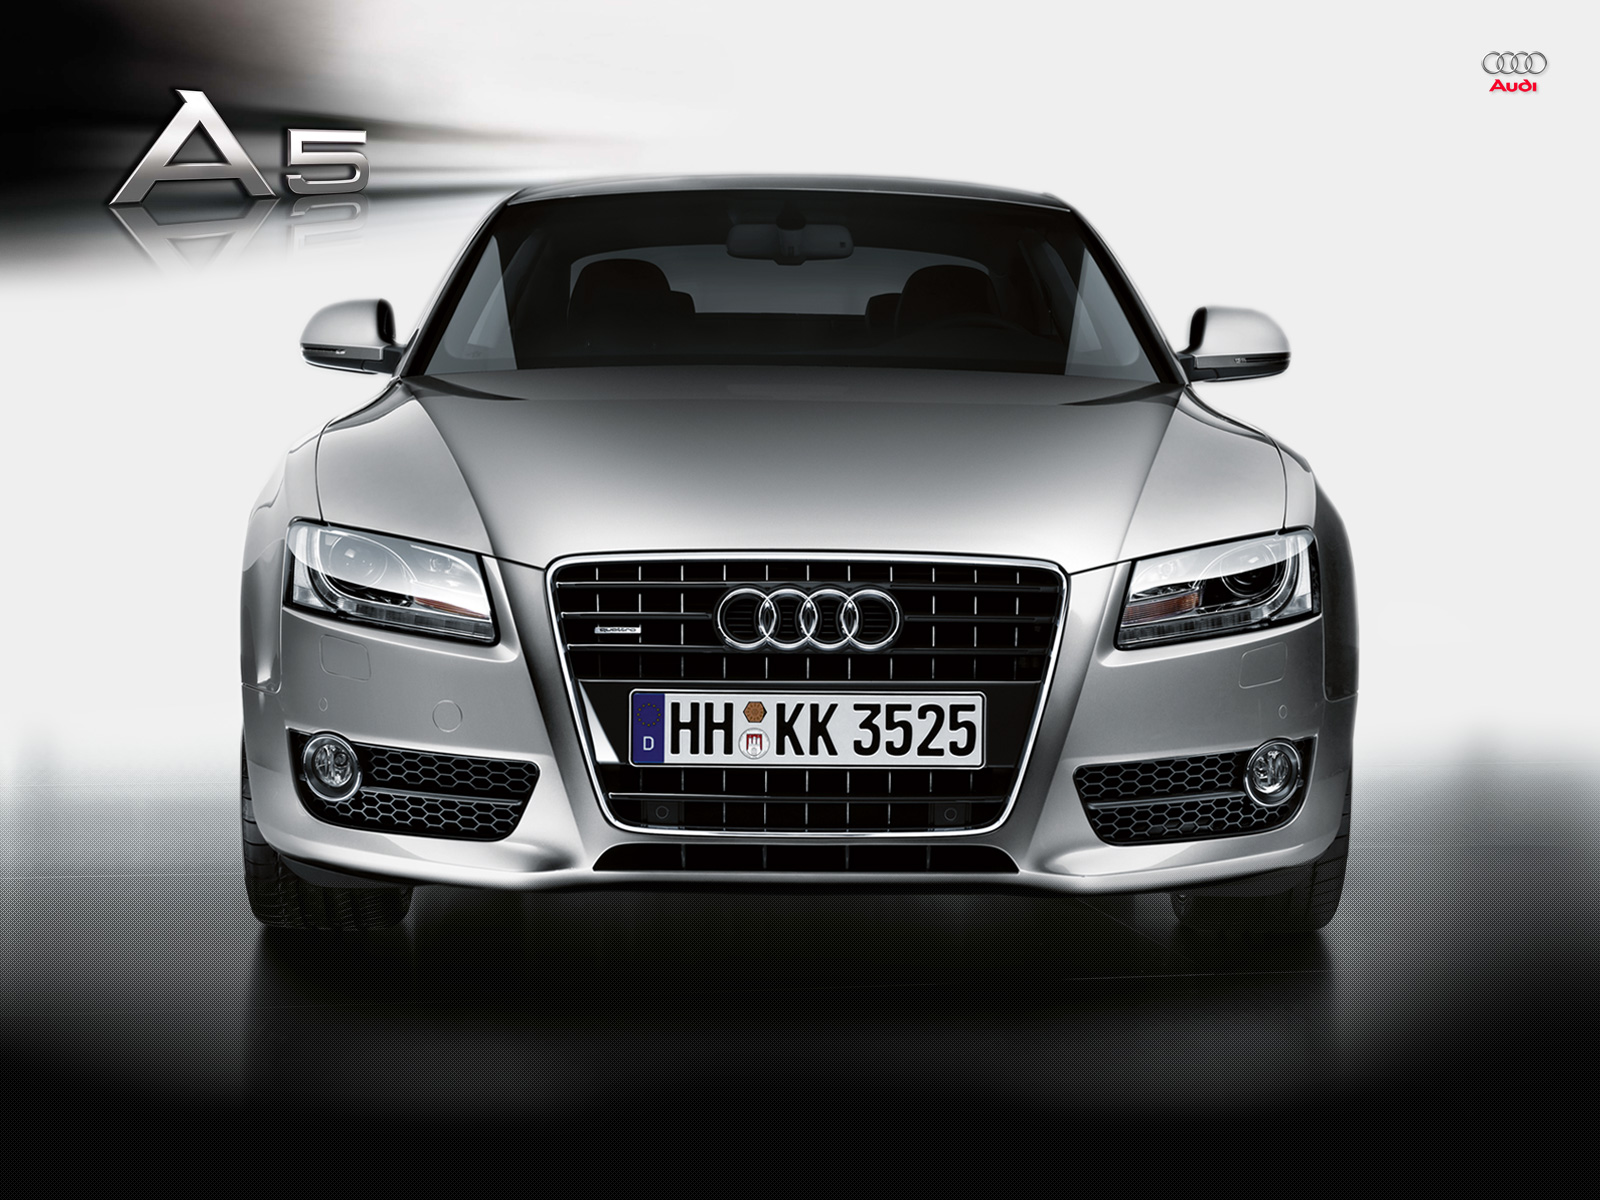 Download Audi Car Hd Wallpapers Nice Wallpapers 1600x1200 96